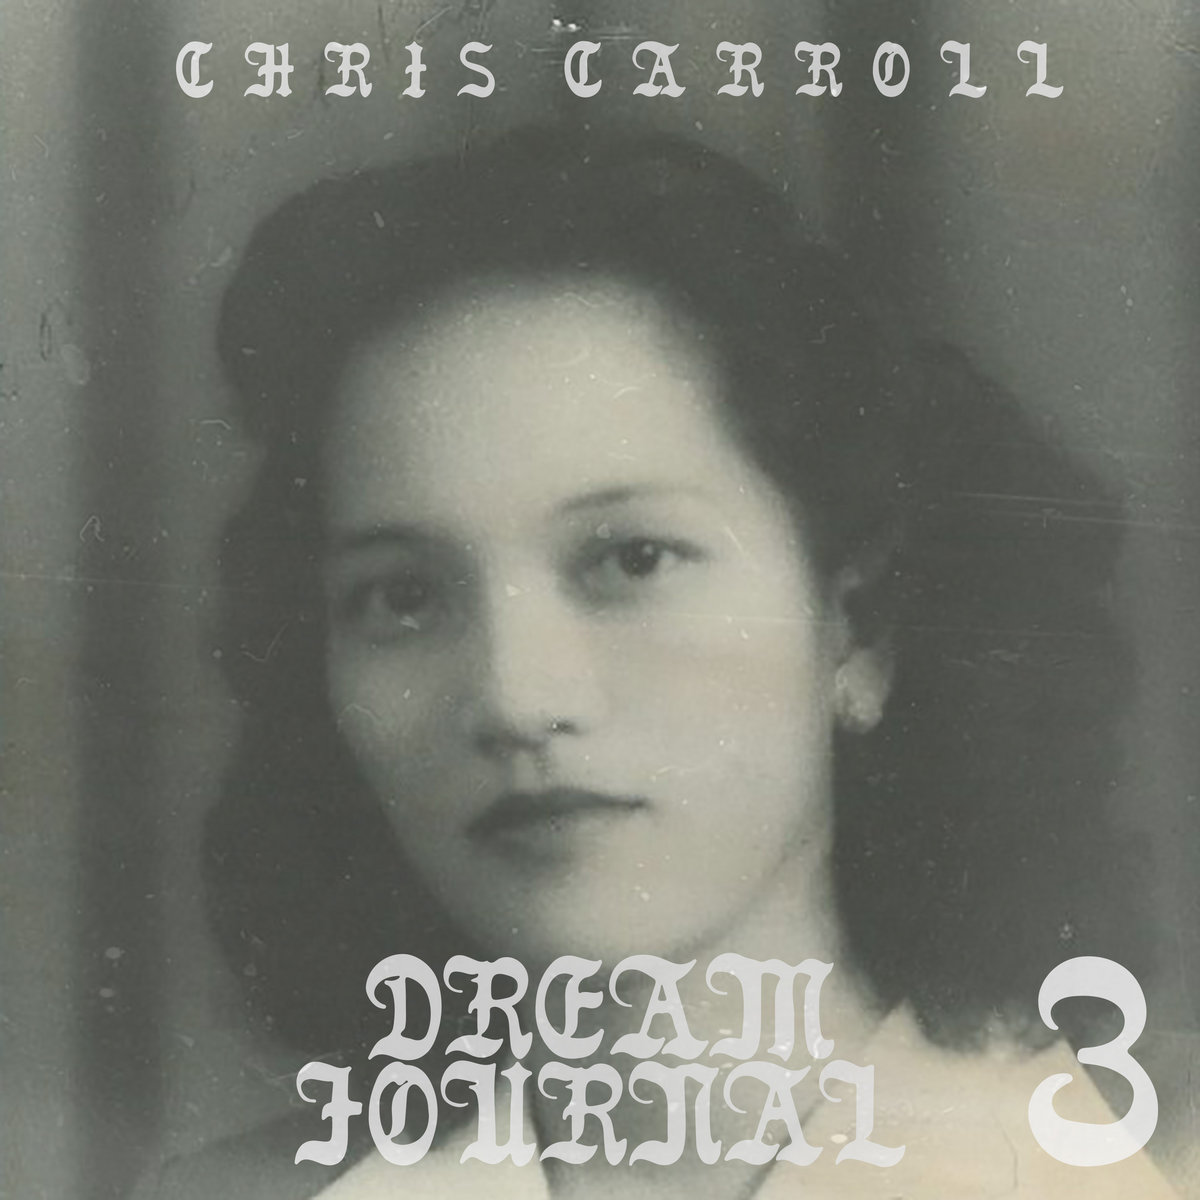 Chris Carroll-'Dream Journal, Vol. 3'. 2019. Self-Released by Chris Carroll for Raindrop Sound.